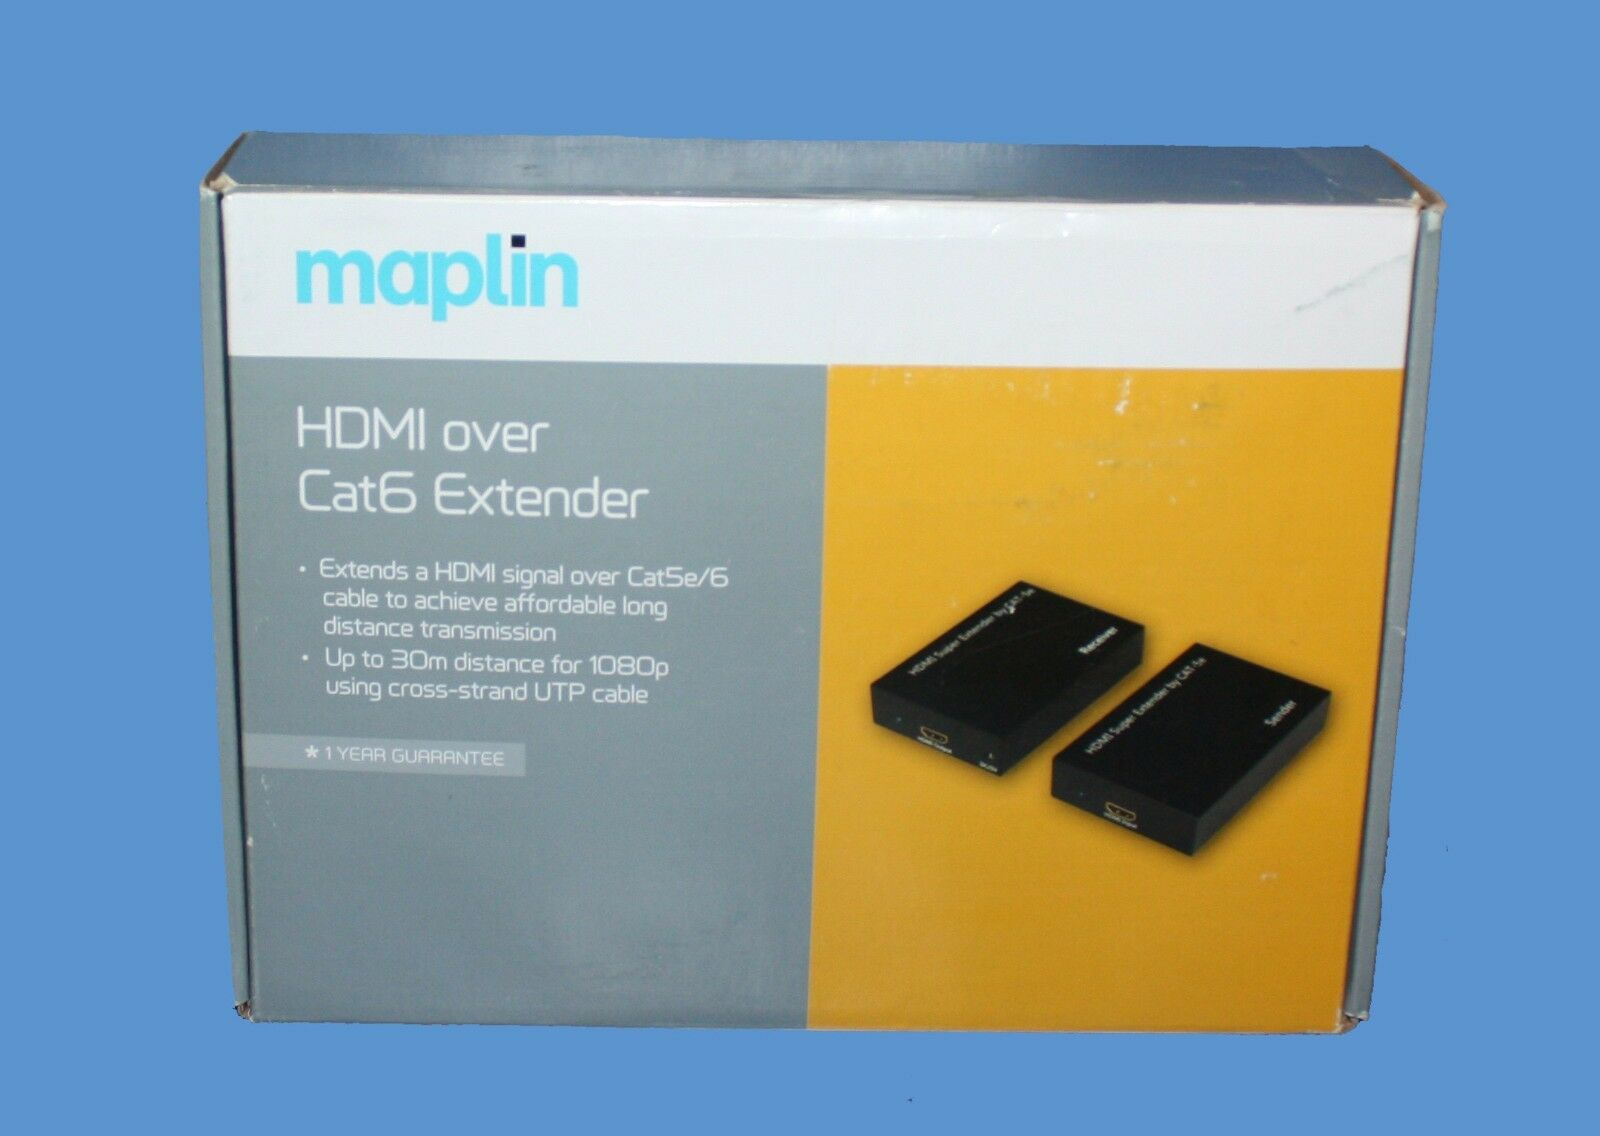 Maplin 60m Hdmi Over Cat5e 6 Range Extender 1080p A99rr Rrp Rj45 Wiring Diagram 1 Of 2free Shipping